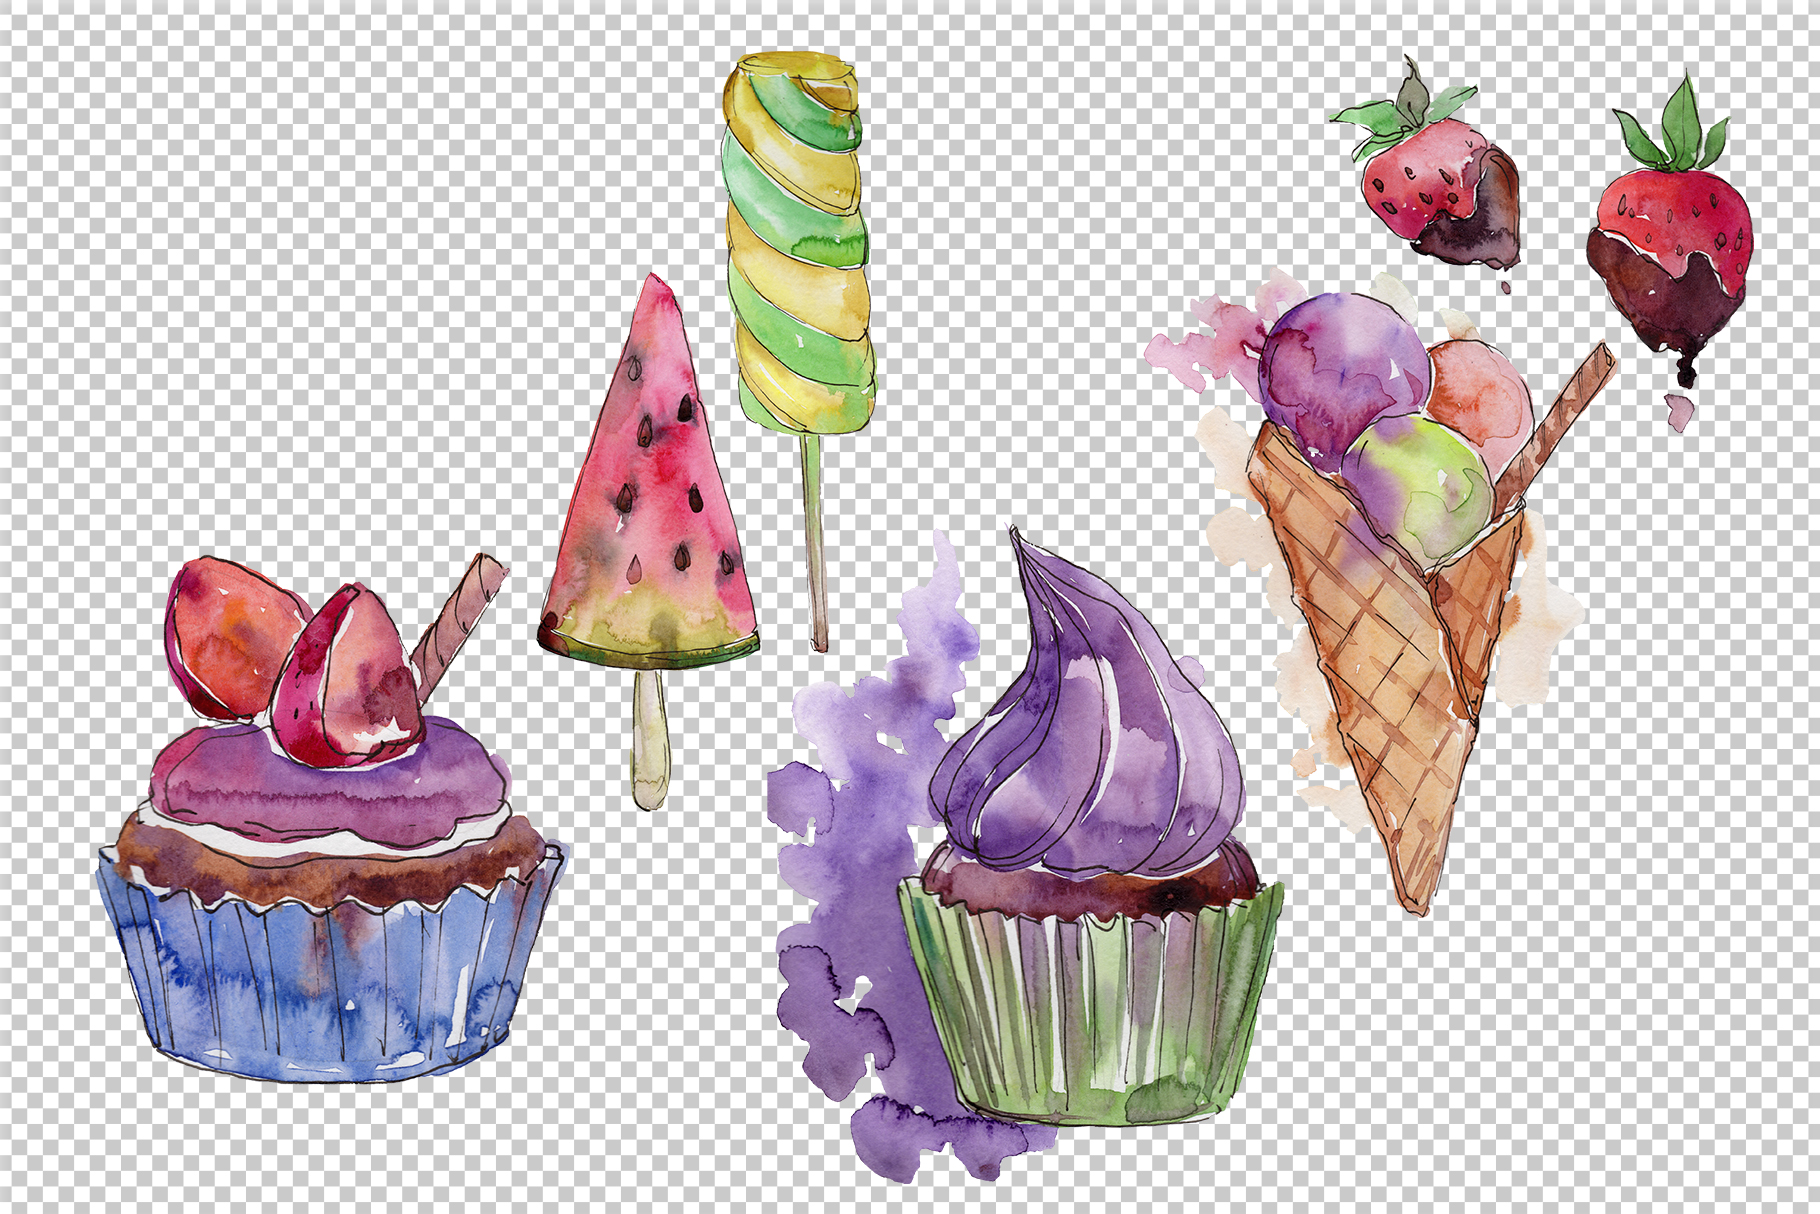 Download Free Watercolor Mix Cool Ice Cream Graphic By Mystocks Creative Fabrica for Cricut Explore, Silhouette and other cutting machines.